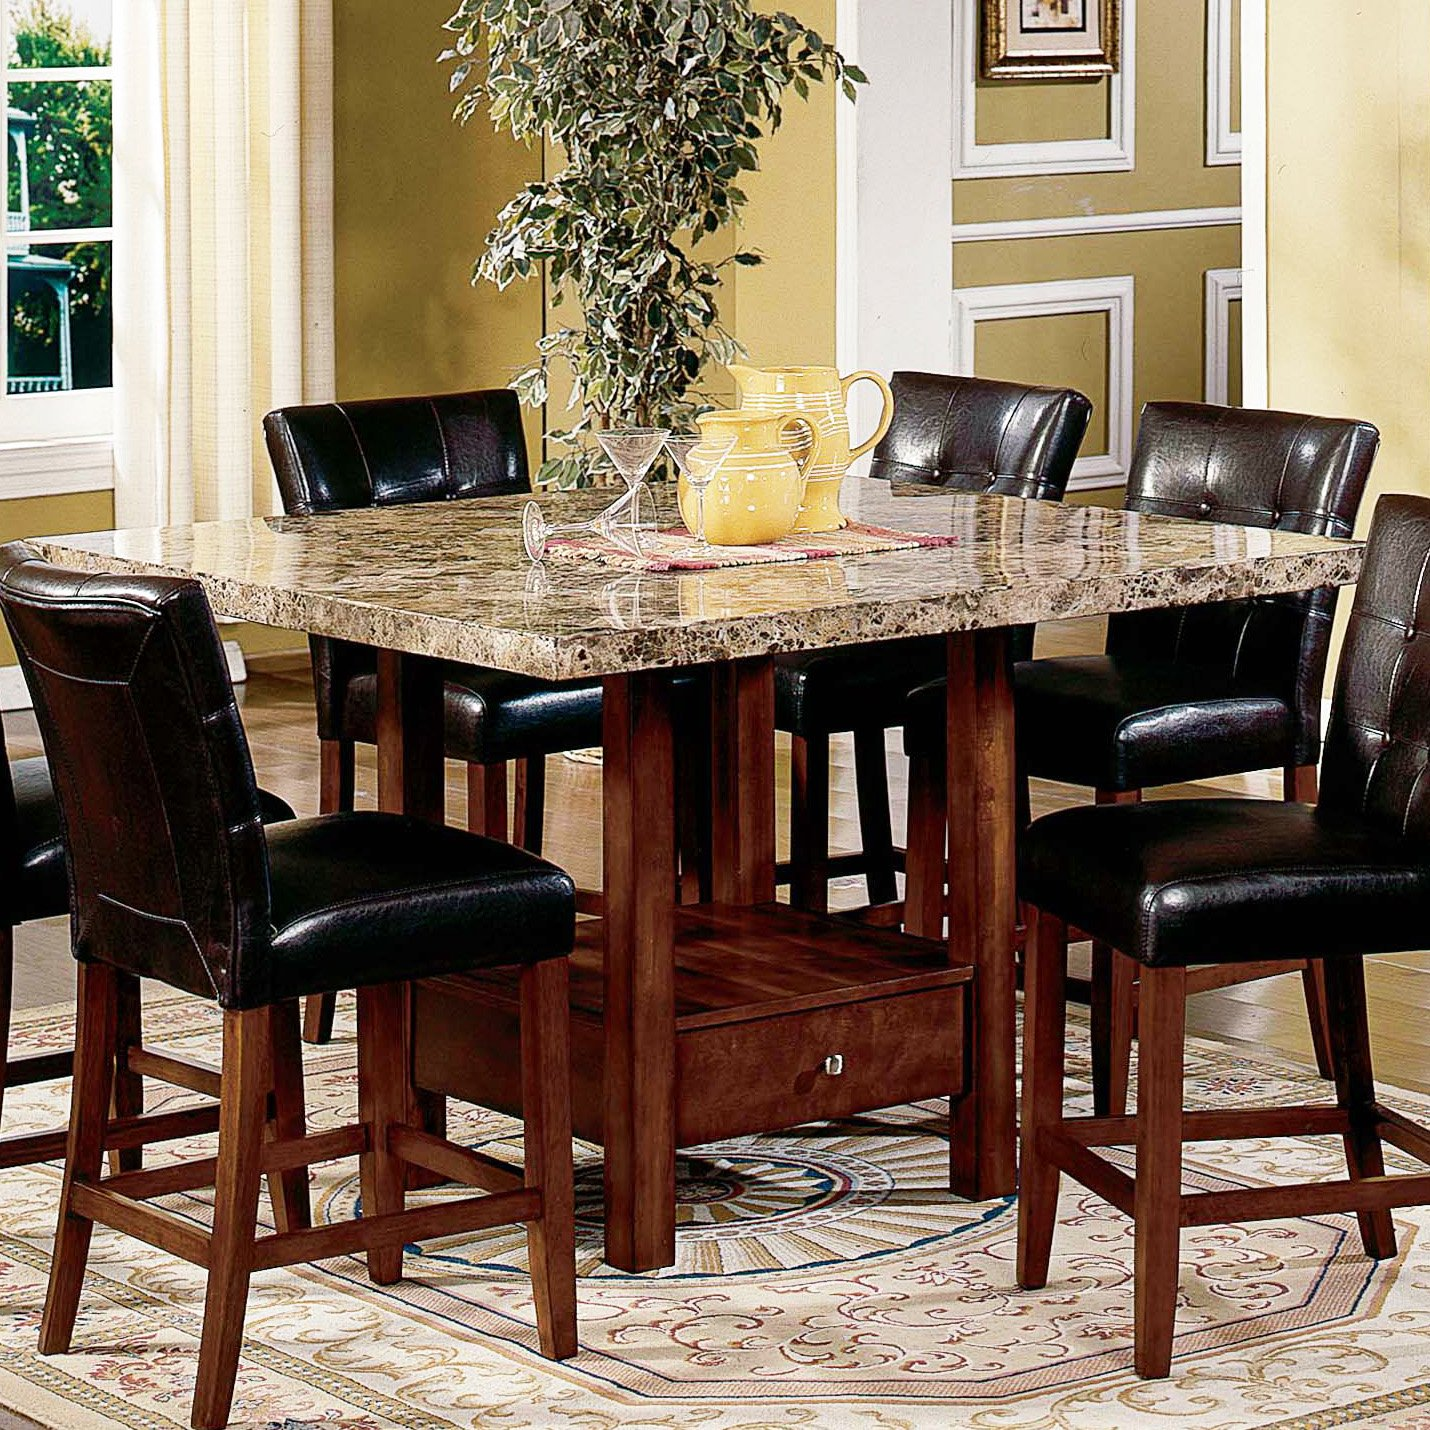 Marble High Top Table Sets With Black Wooden Leather Chairs